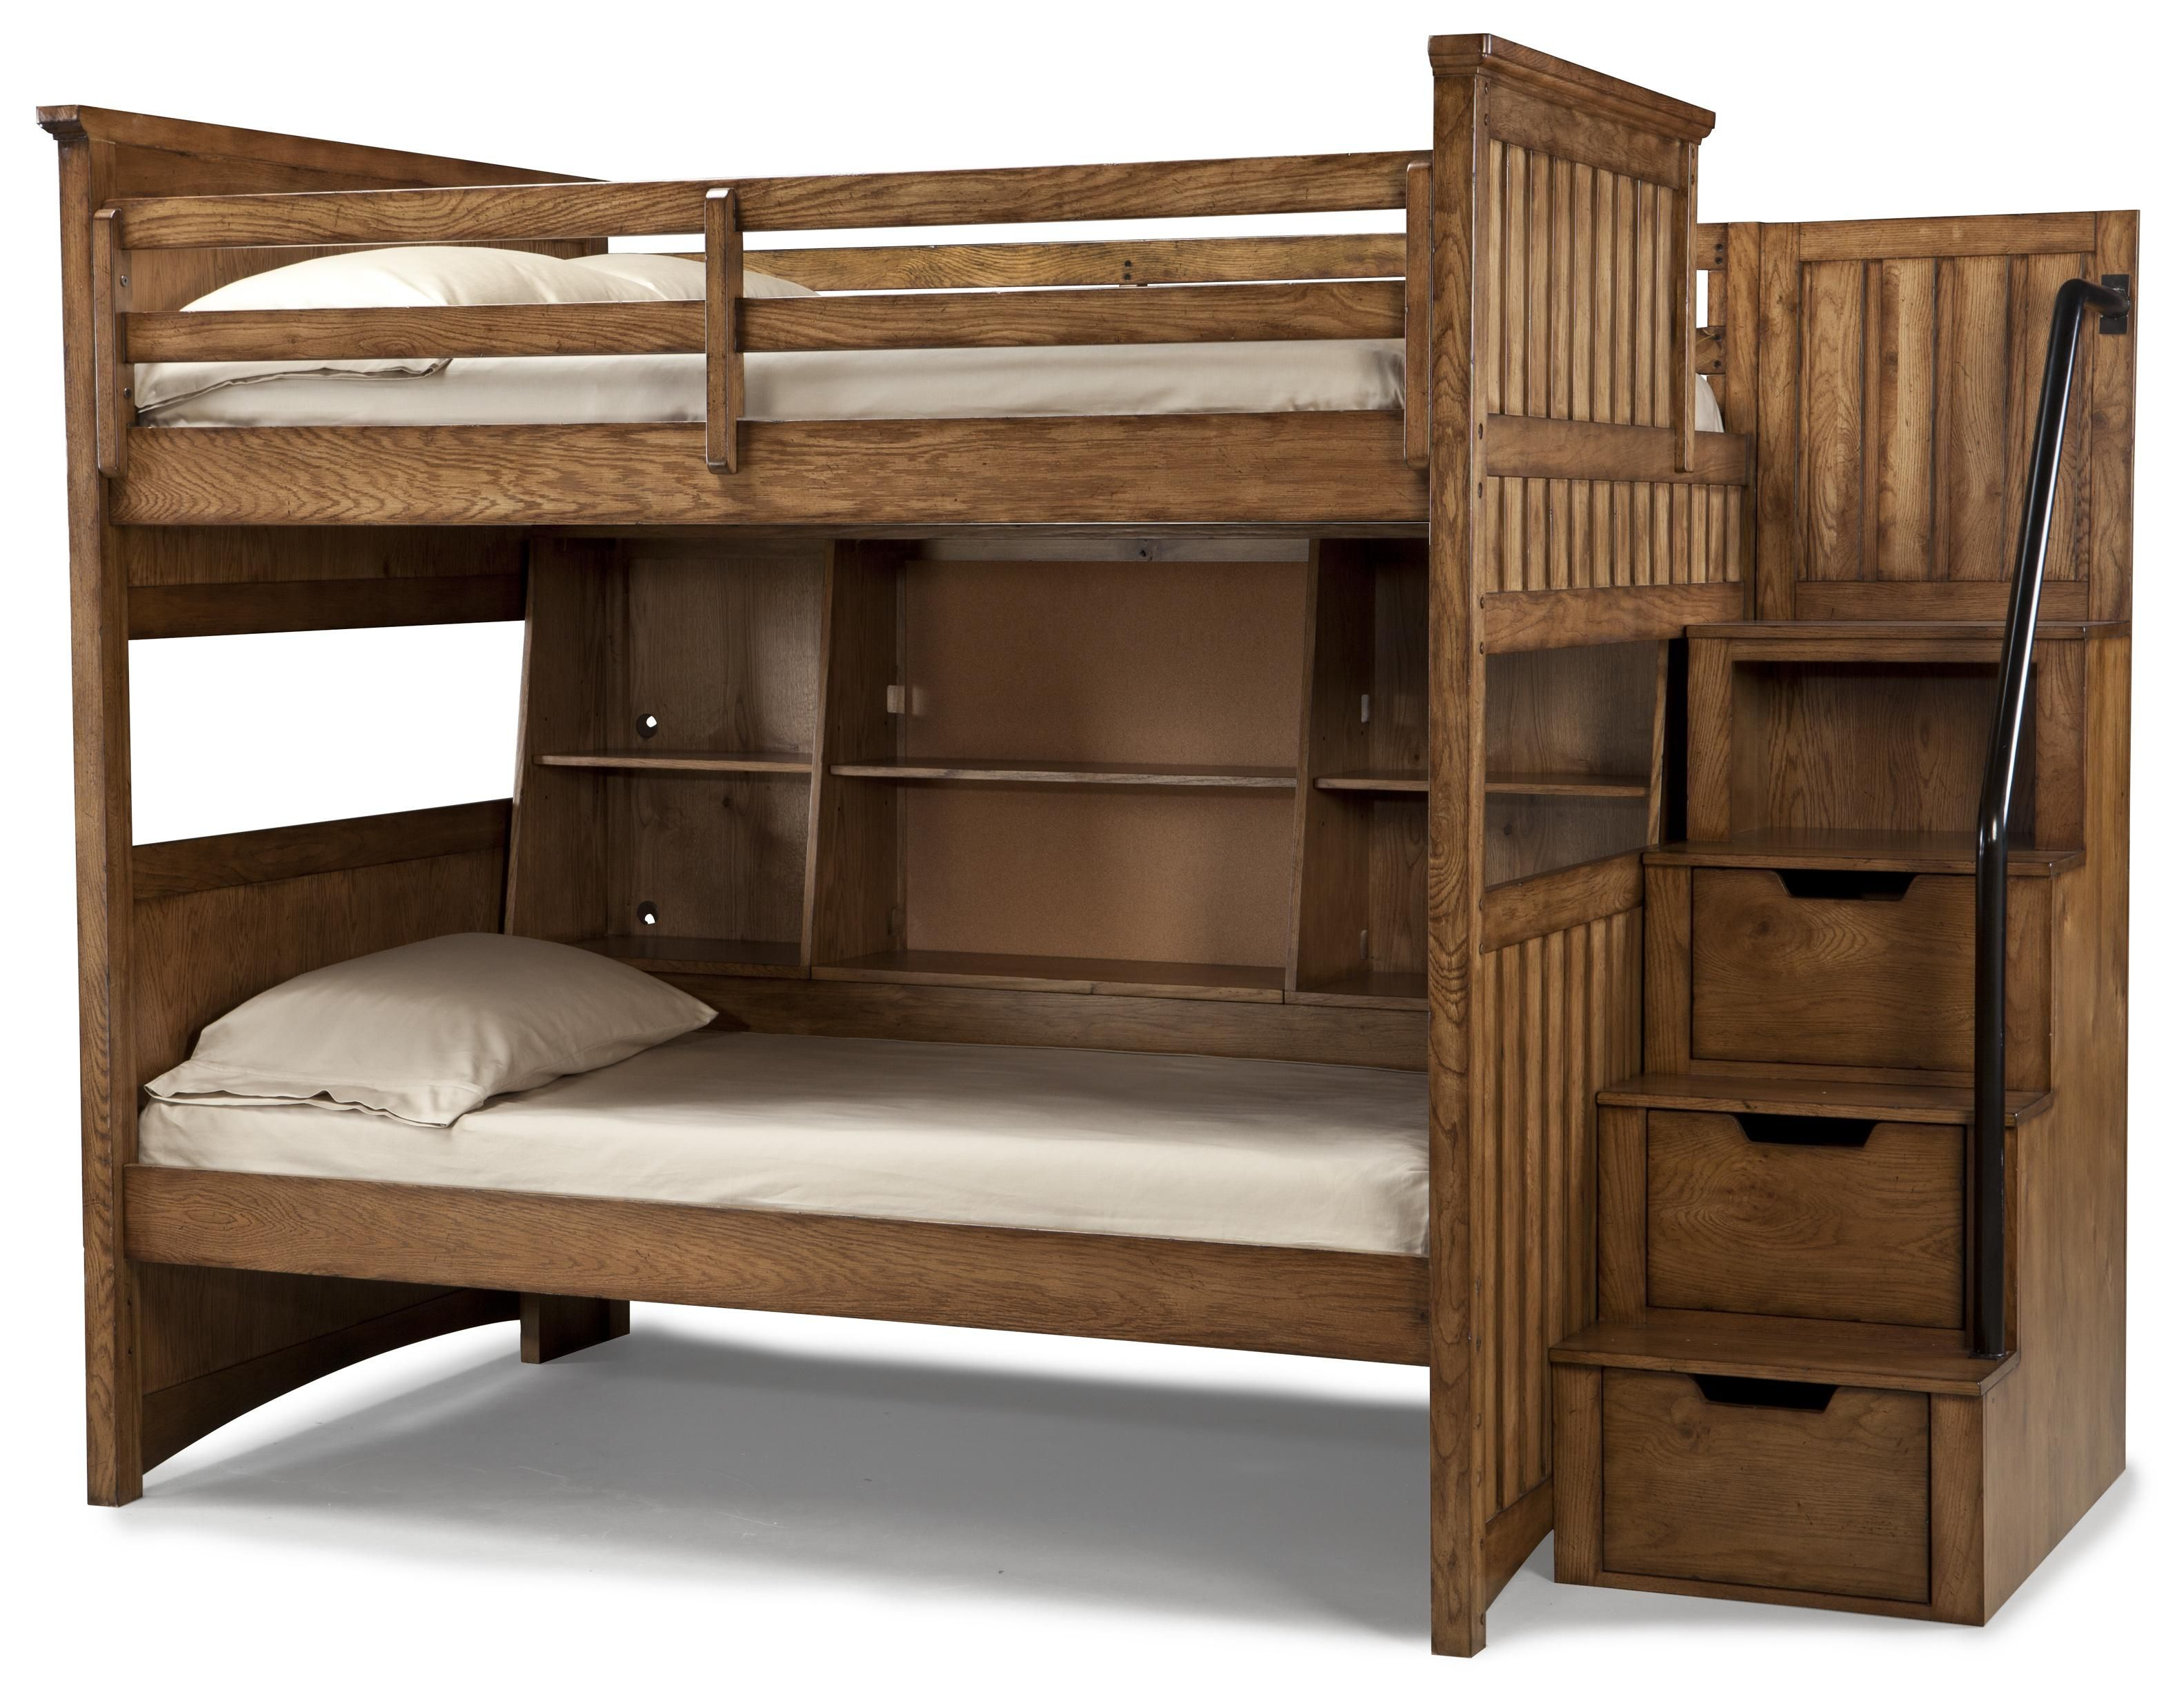 Home In 2018 Home Projects Pinterest Bunk Beds With Stairs